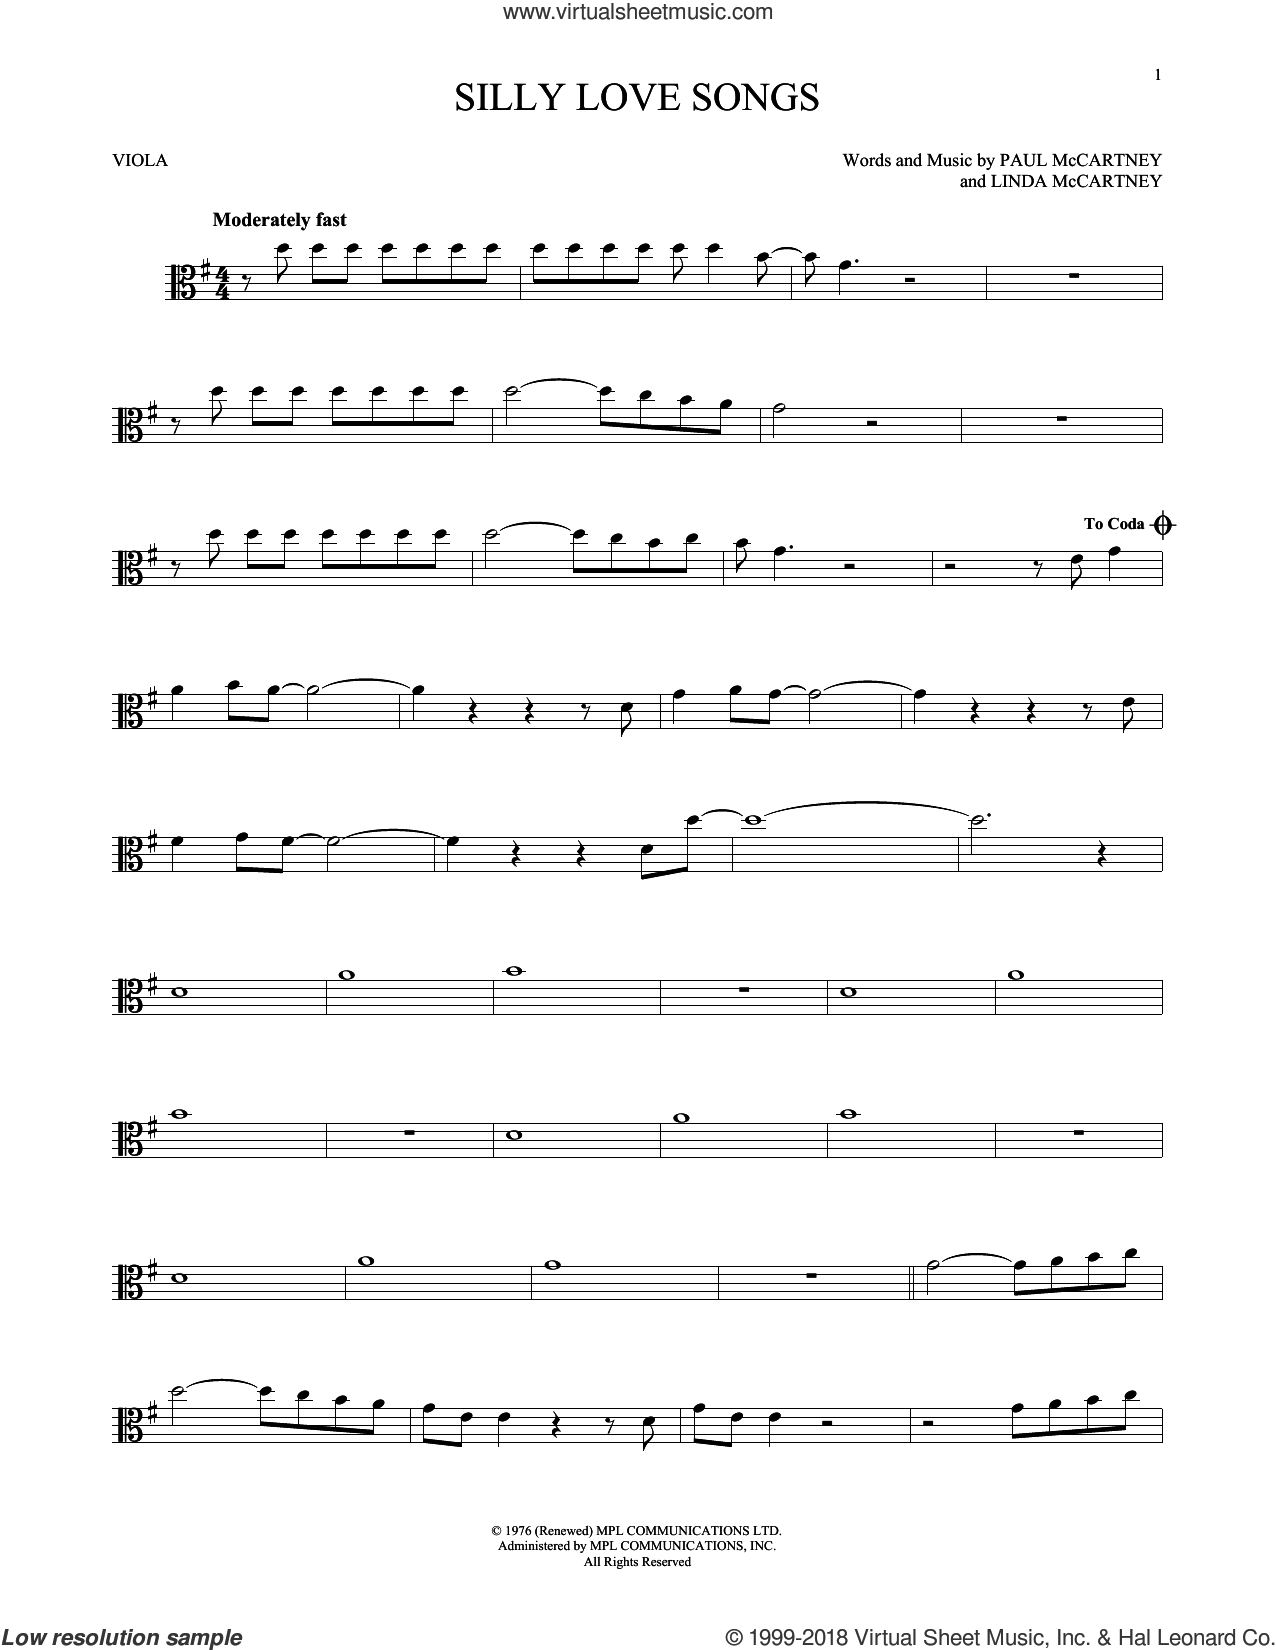 Silly Love Songs sheet music for viola solo by Paul McCartney, Wings and Linda McCartney, intermediate skill level